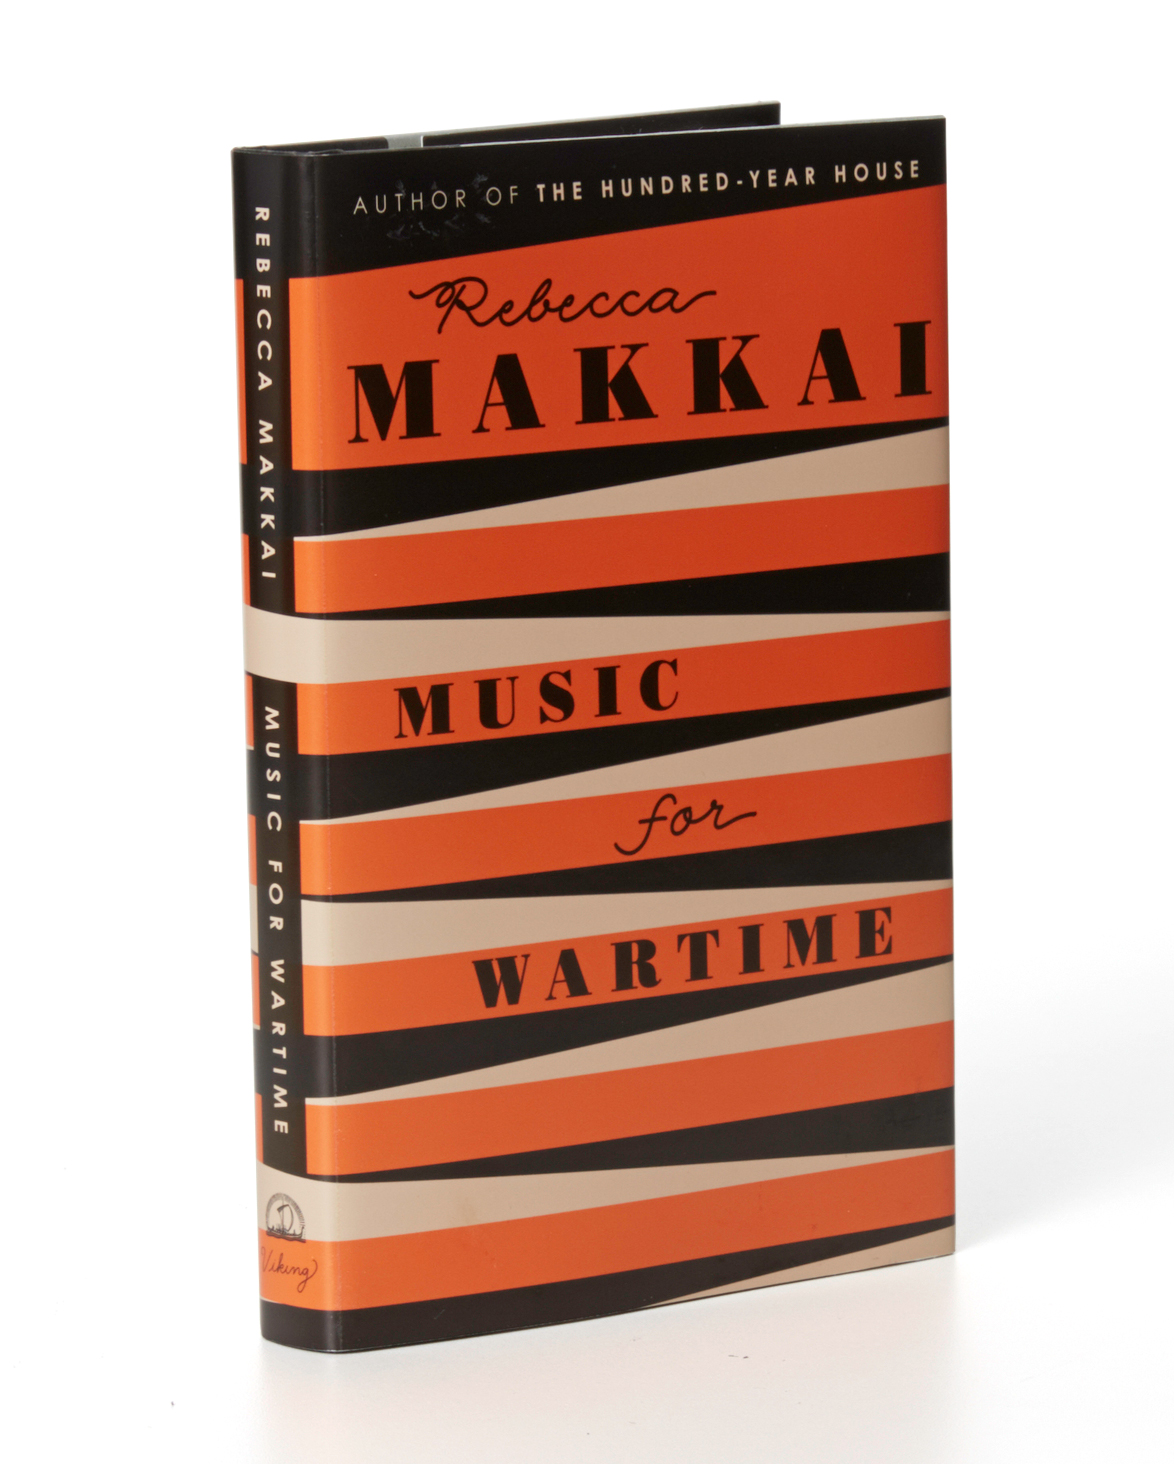 music-for-wartime-book-silo-058-d112123.jpg